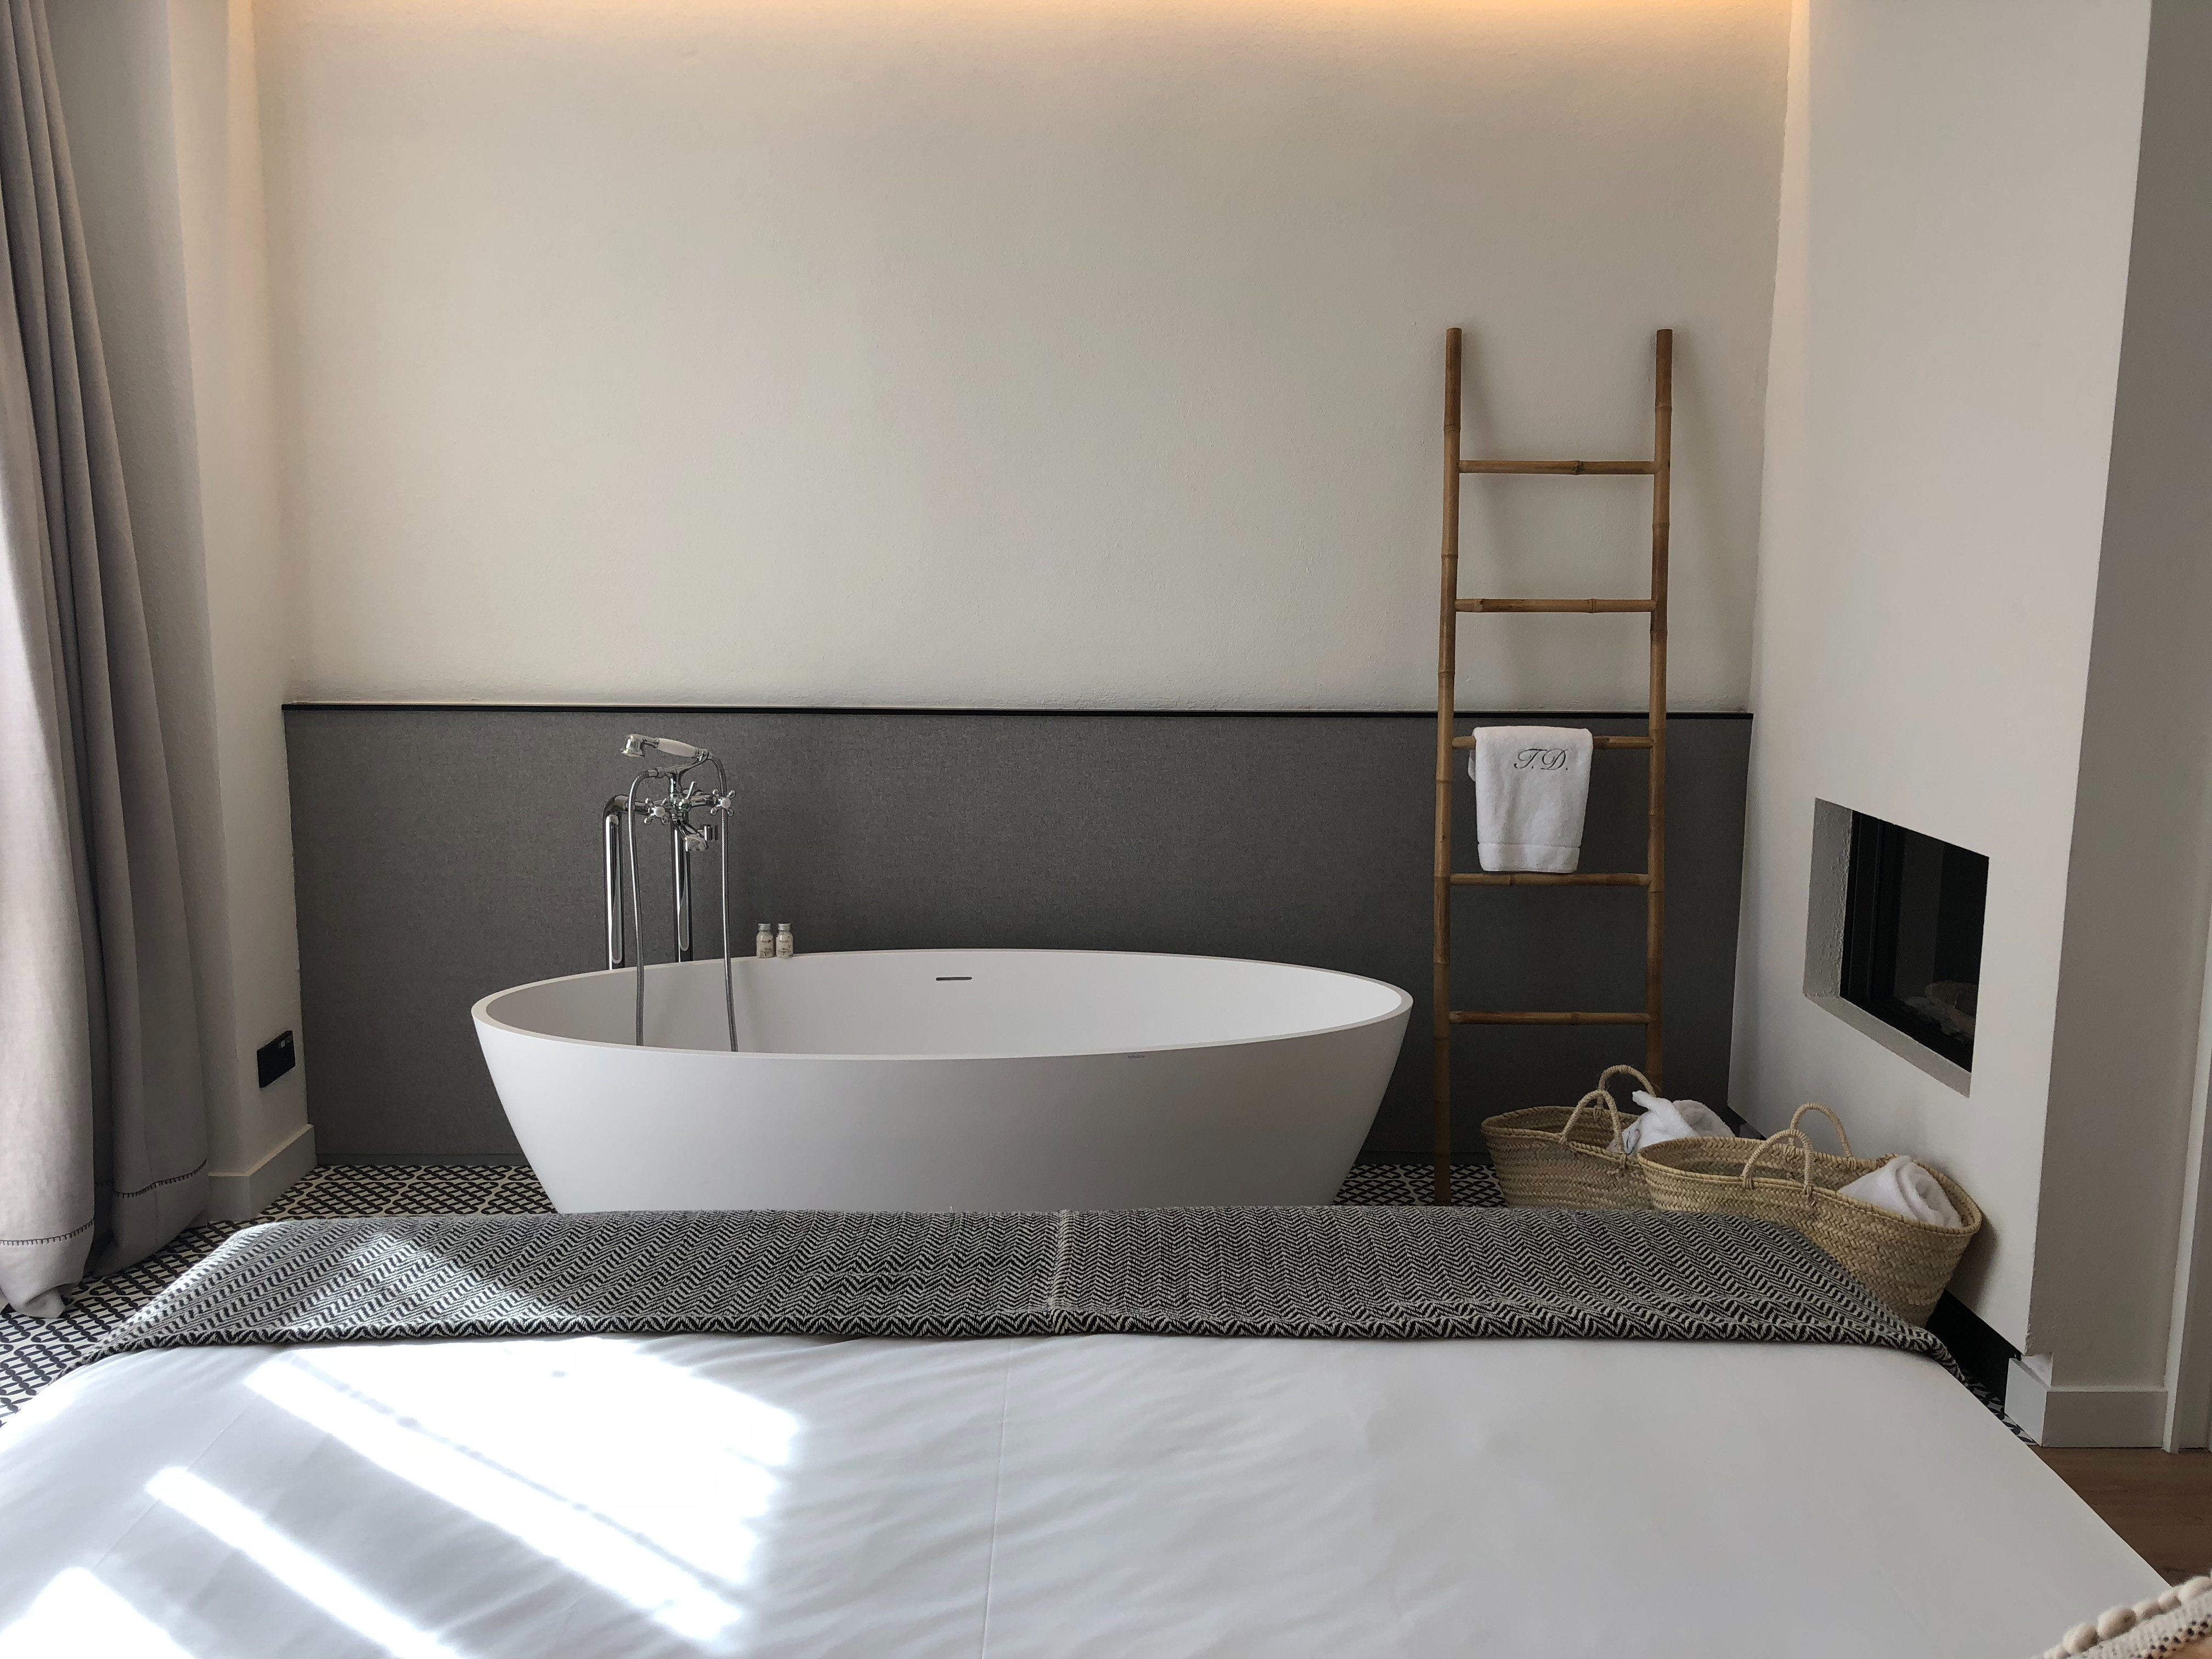 What Does Vasca Da Bagno Mean : Four important reasons why you need an interior designer nickie kantor